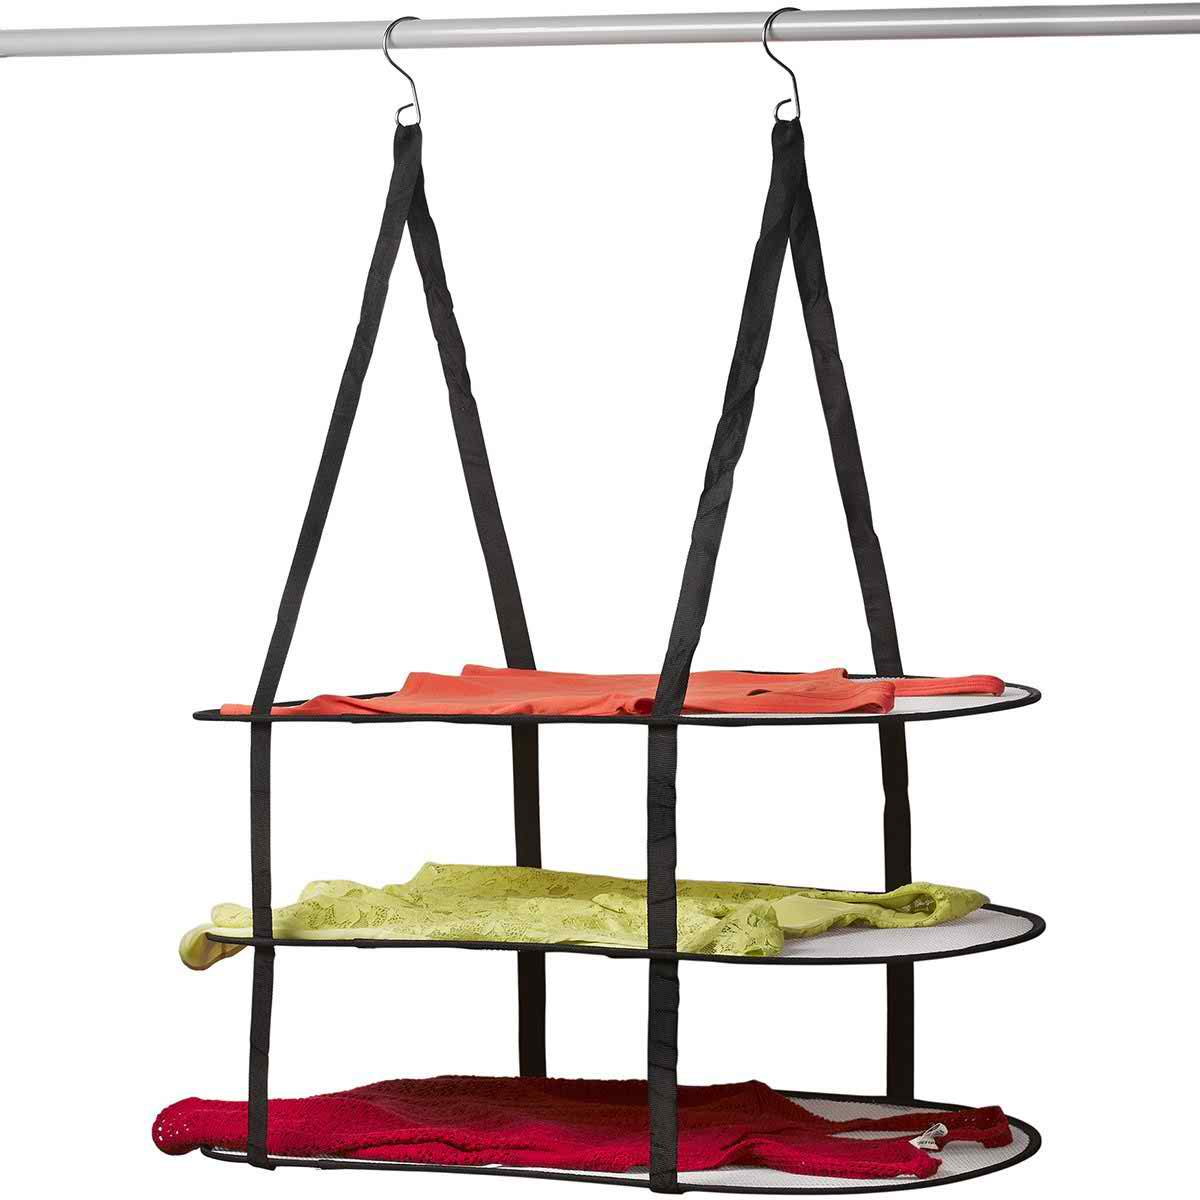 Hanging sweater drying rack mesh clothes drying rack